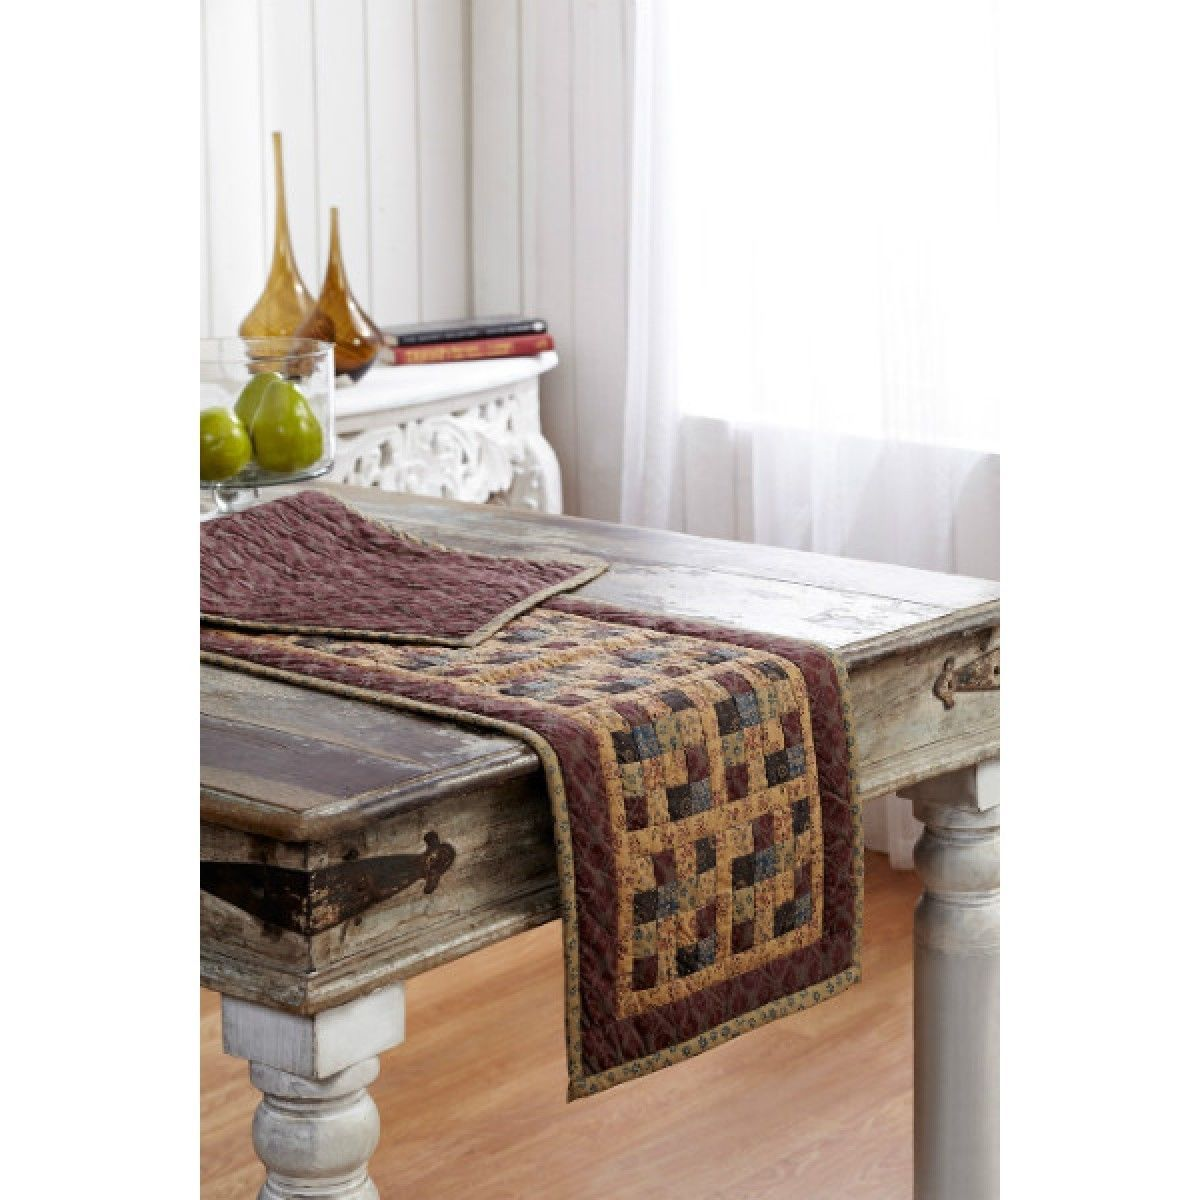 """Lewiston Runner Quilted Rustic Primitive Country Plaid Burgundy Khaki 13x36""""   eBay"""